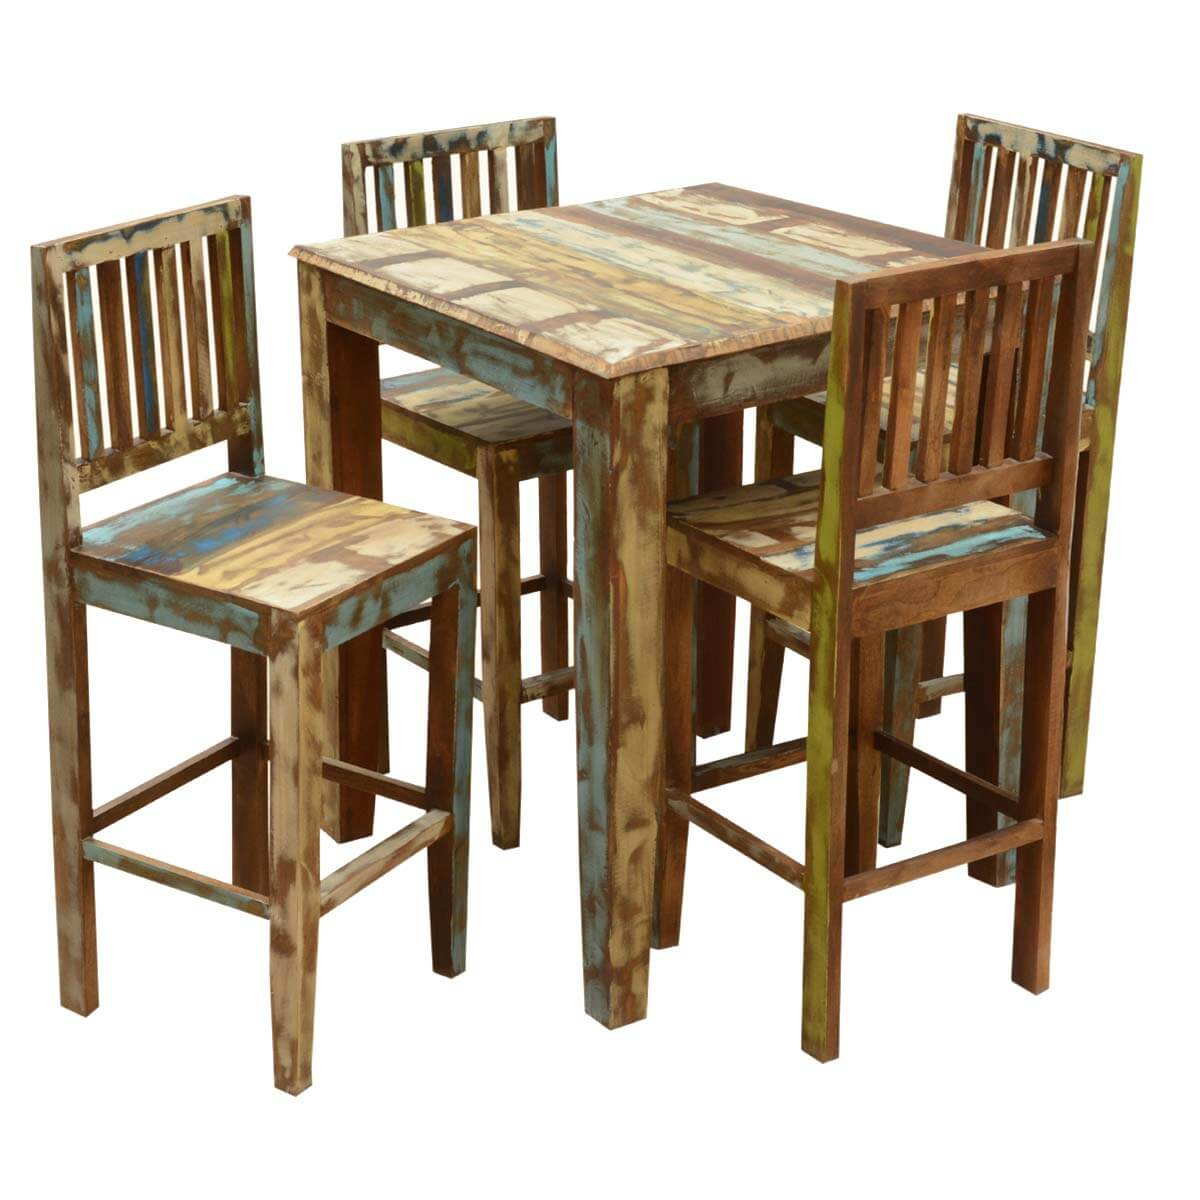 Appalachian rustic reclaimed wood high bar table chair set